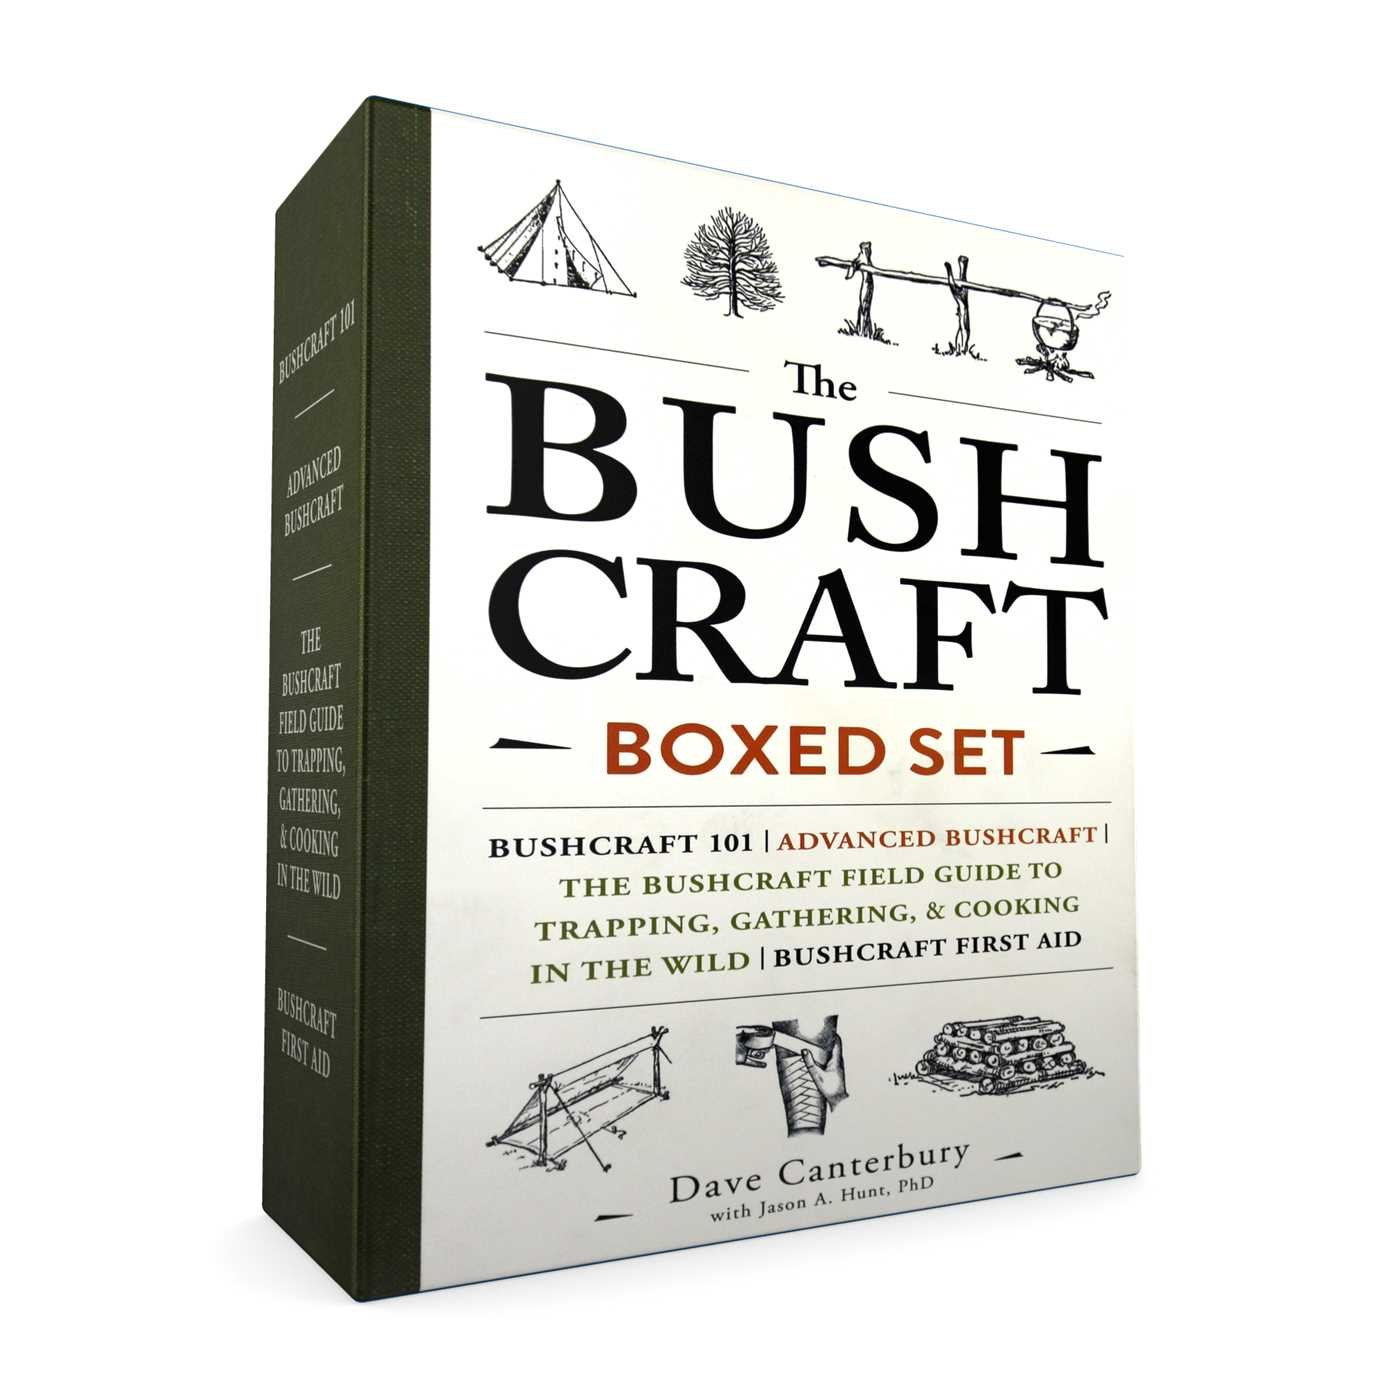 The Bushcraft Boxed Set: Bushcraft 101; Advanced Bushcraft; The Bushcraft Field Guide to Trapping, Gathering, & Cooking in the Wild; Bushcraft First Aid by Adams Media